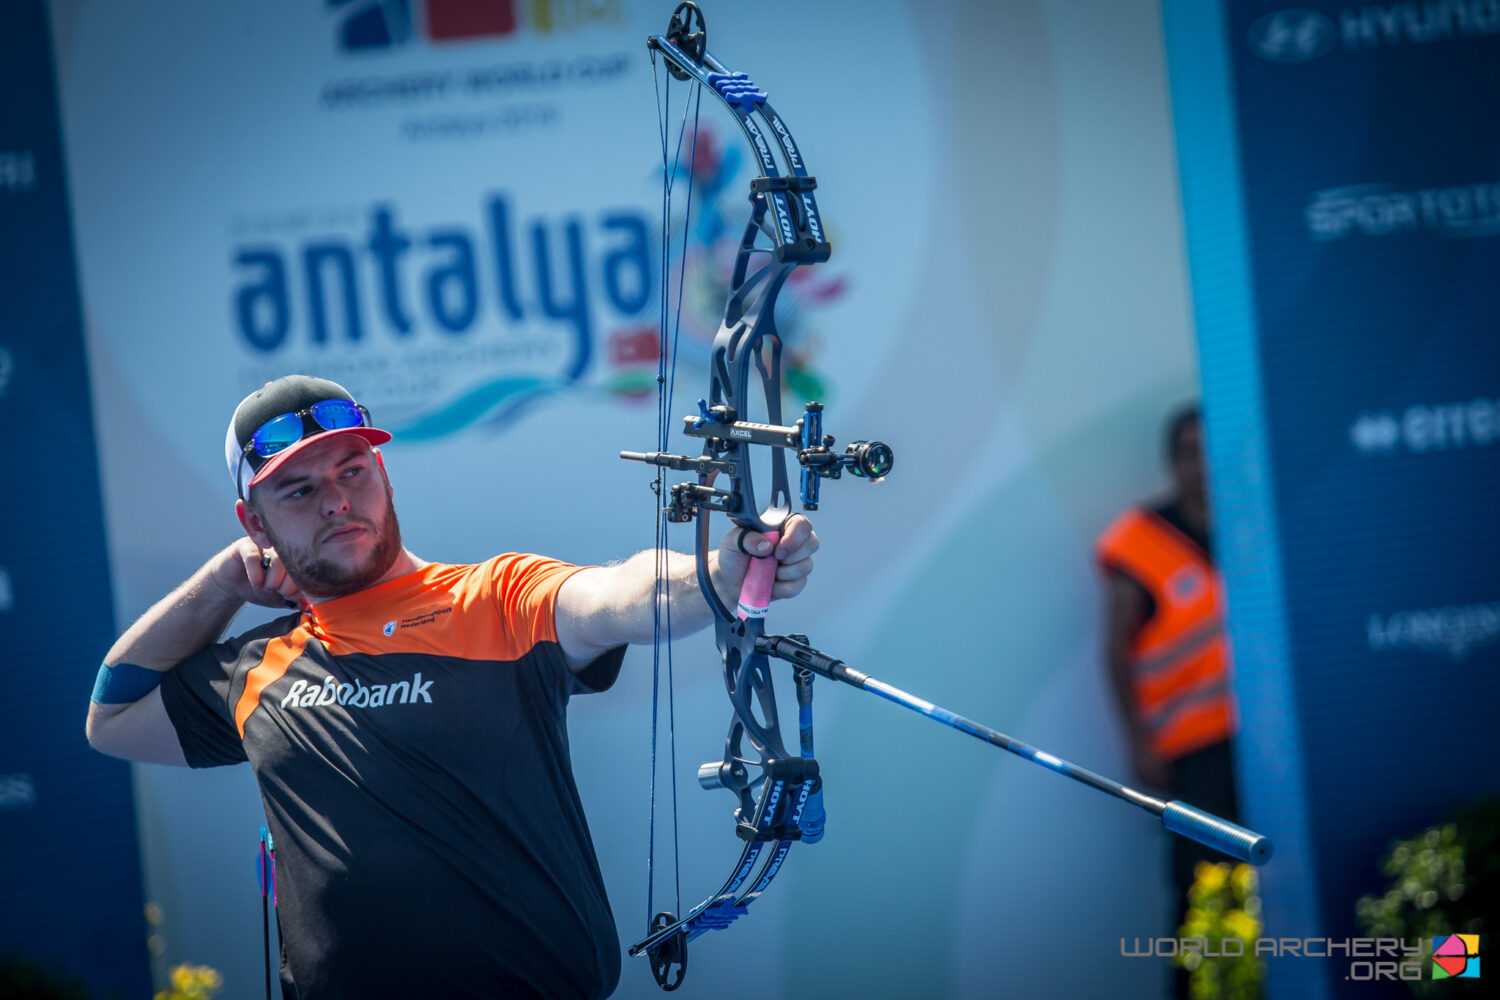 Archery and the Coronavirus- The Impact on Archery Events (Update: March 16 2020)